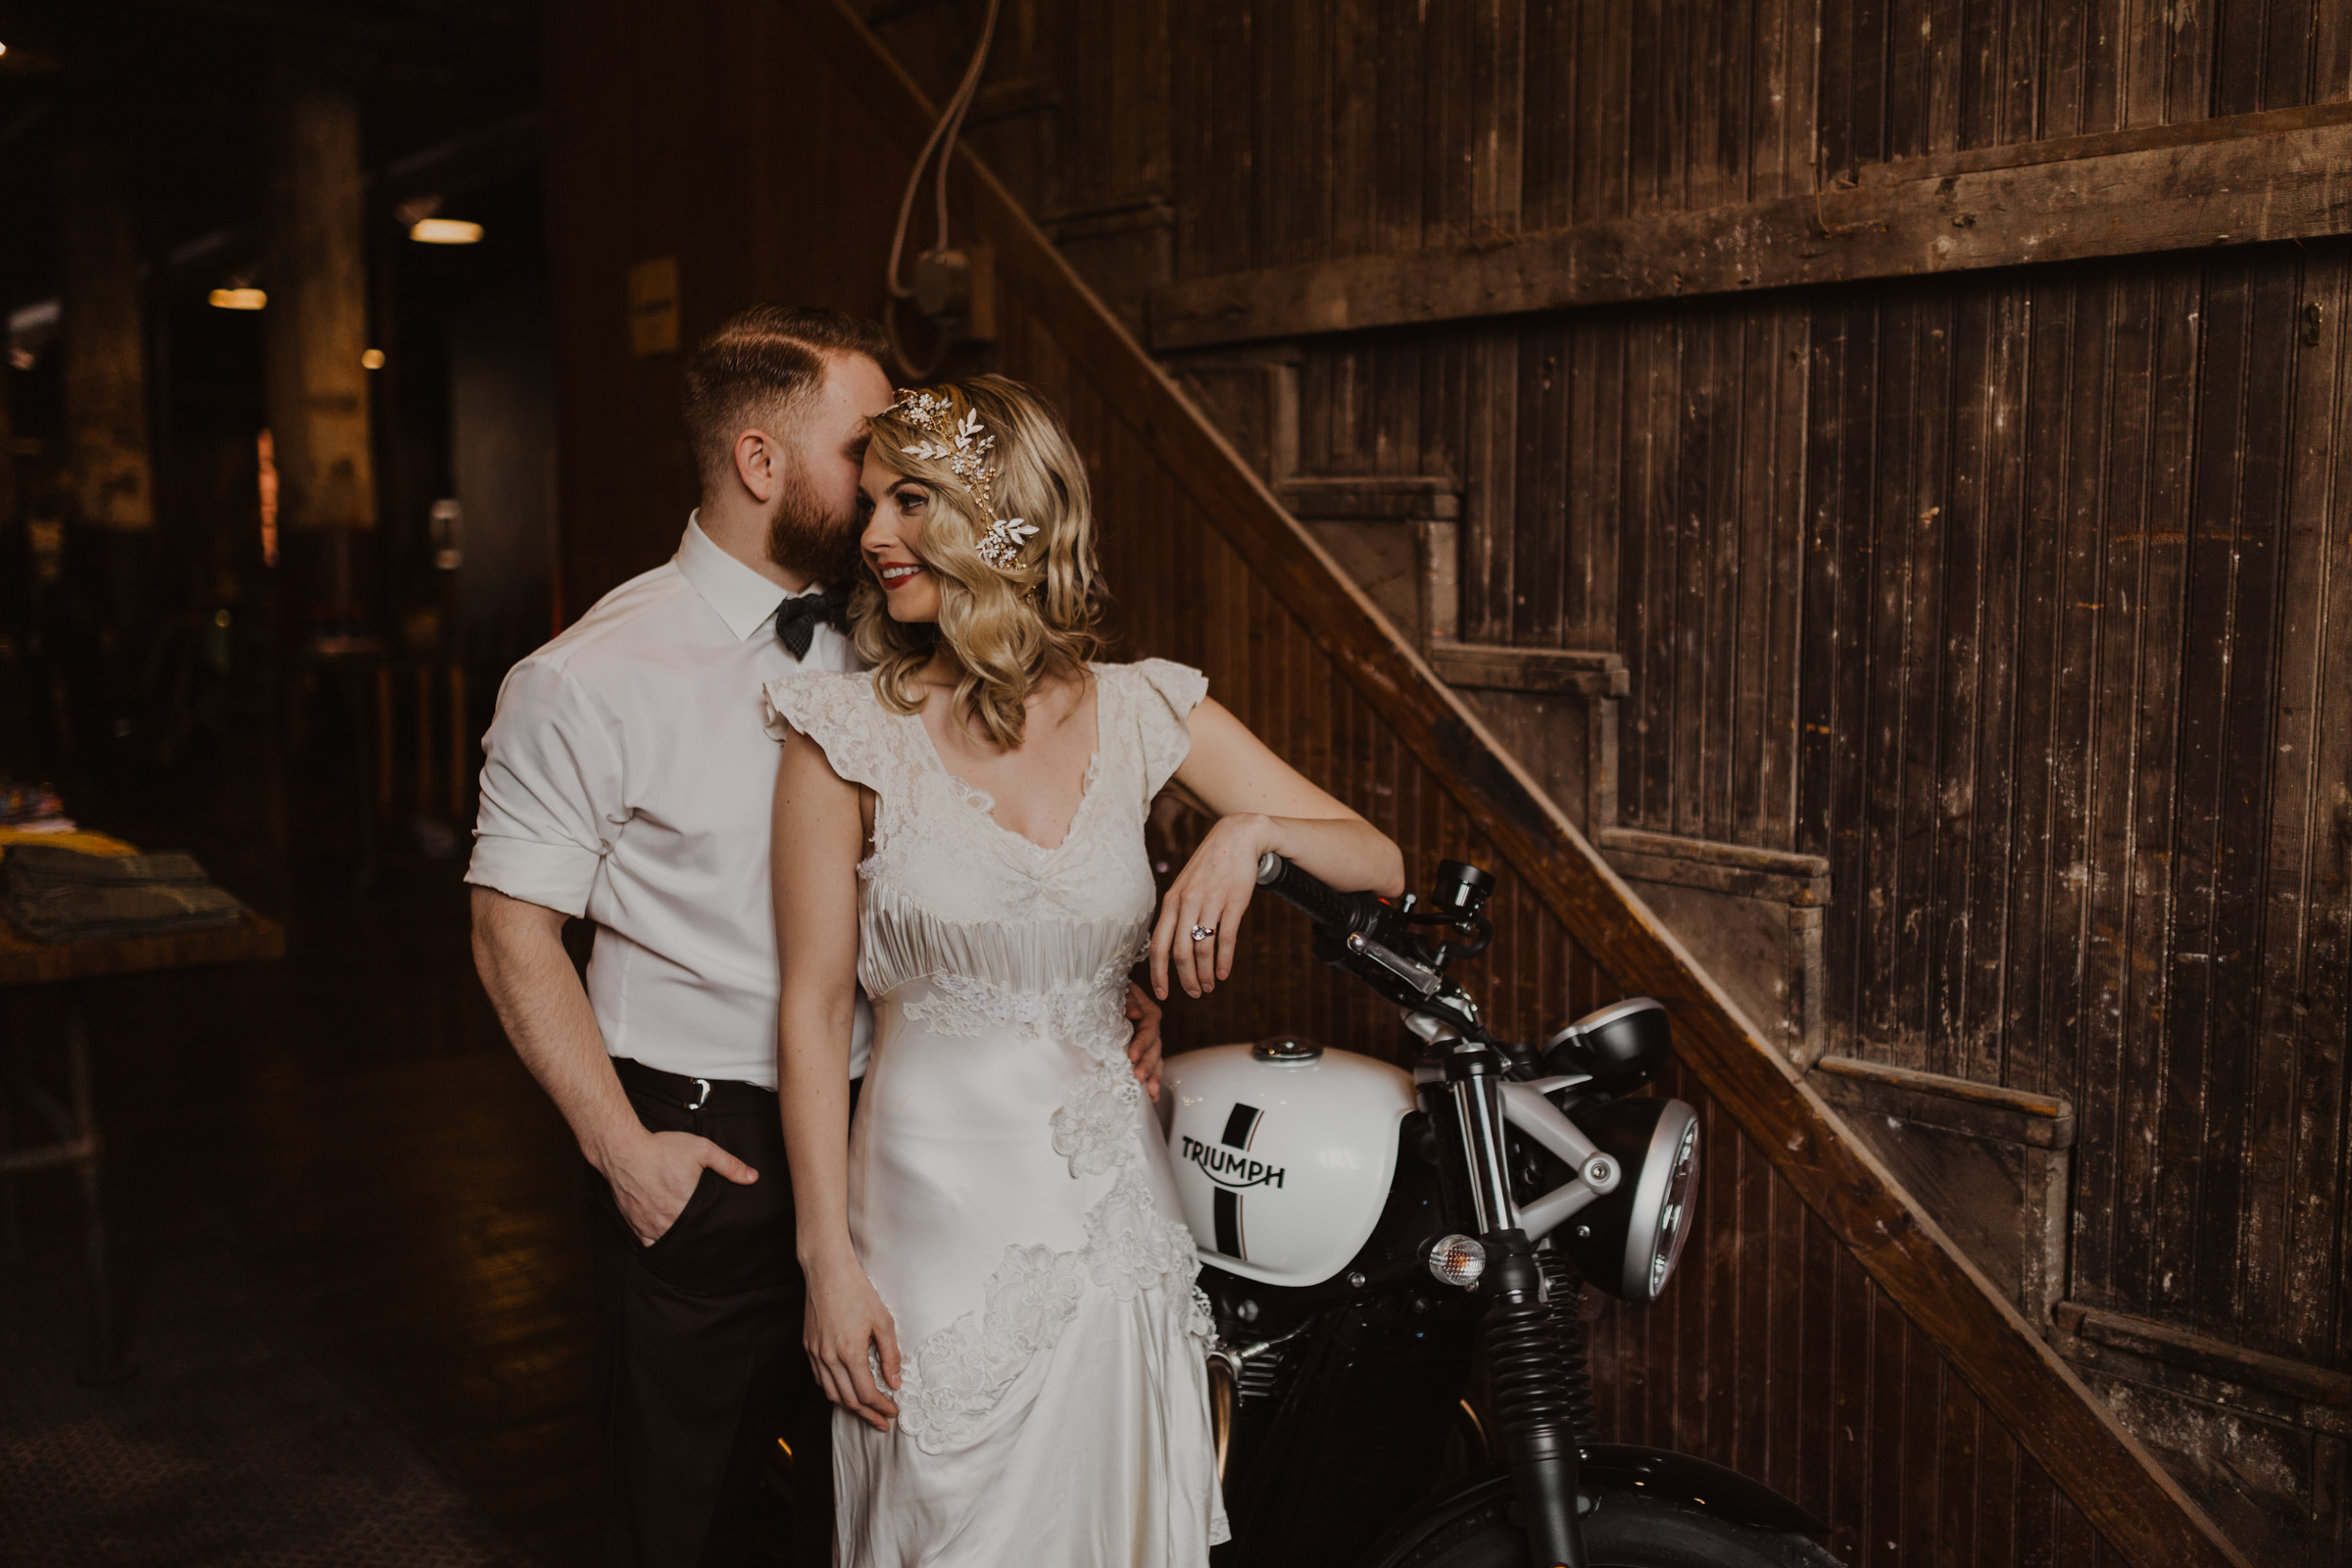 alyssa barletter photography styled shoot wedding inspiration kansas city west bottoms photographer motorcycle edgy intimate-16.jpg